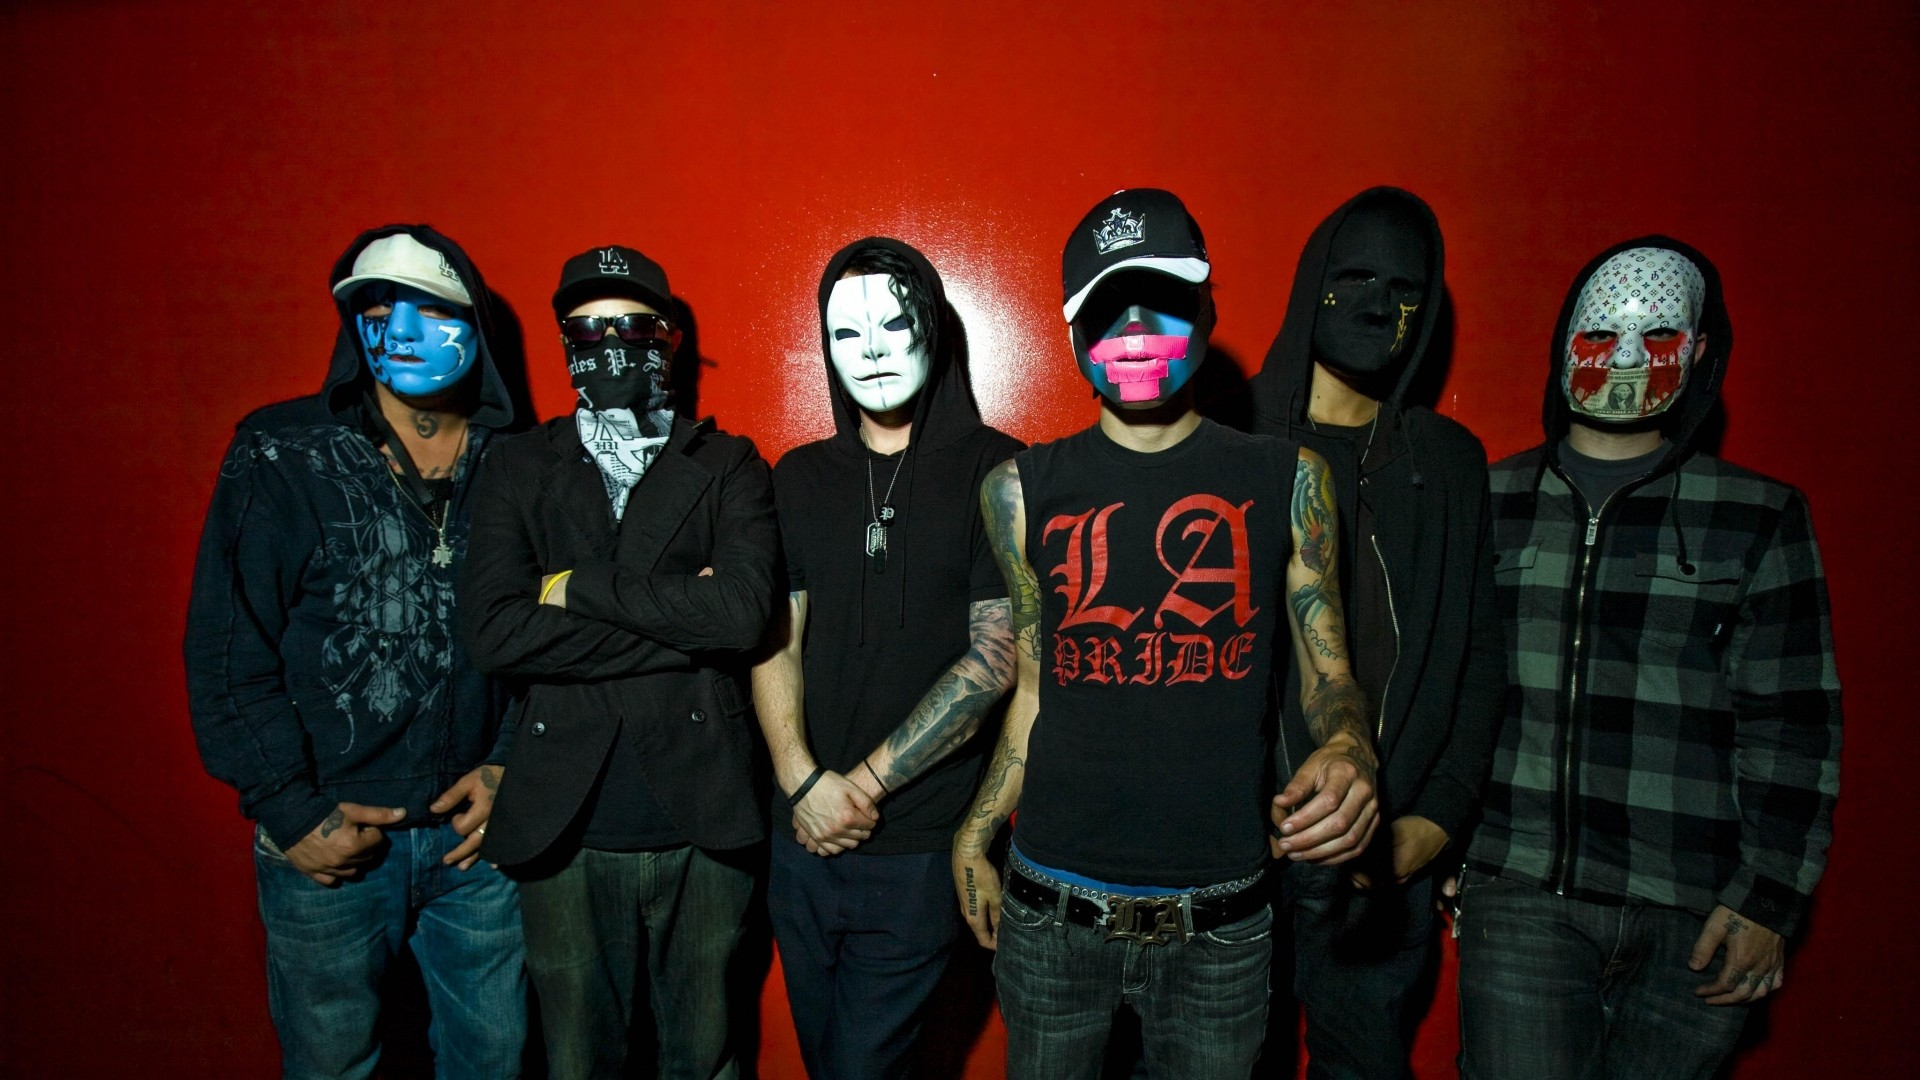 1920x1080 Preview wallpaper hollywood undead, band, members, masks, wall